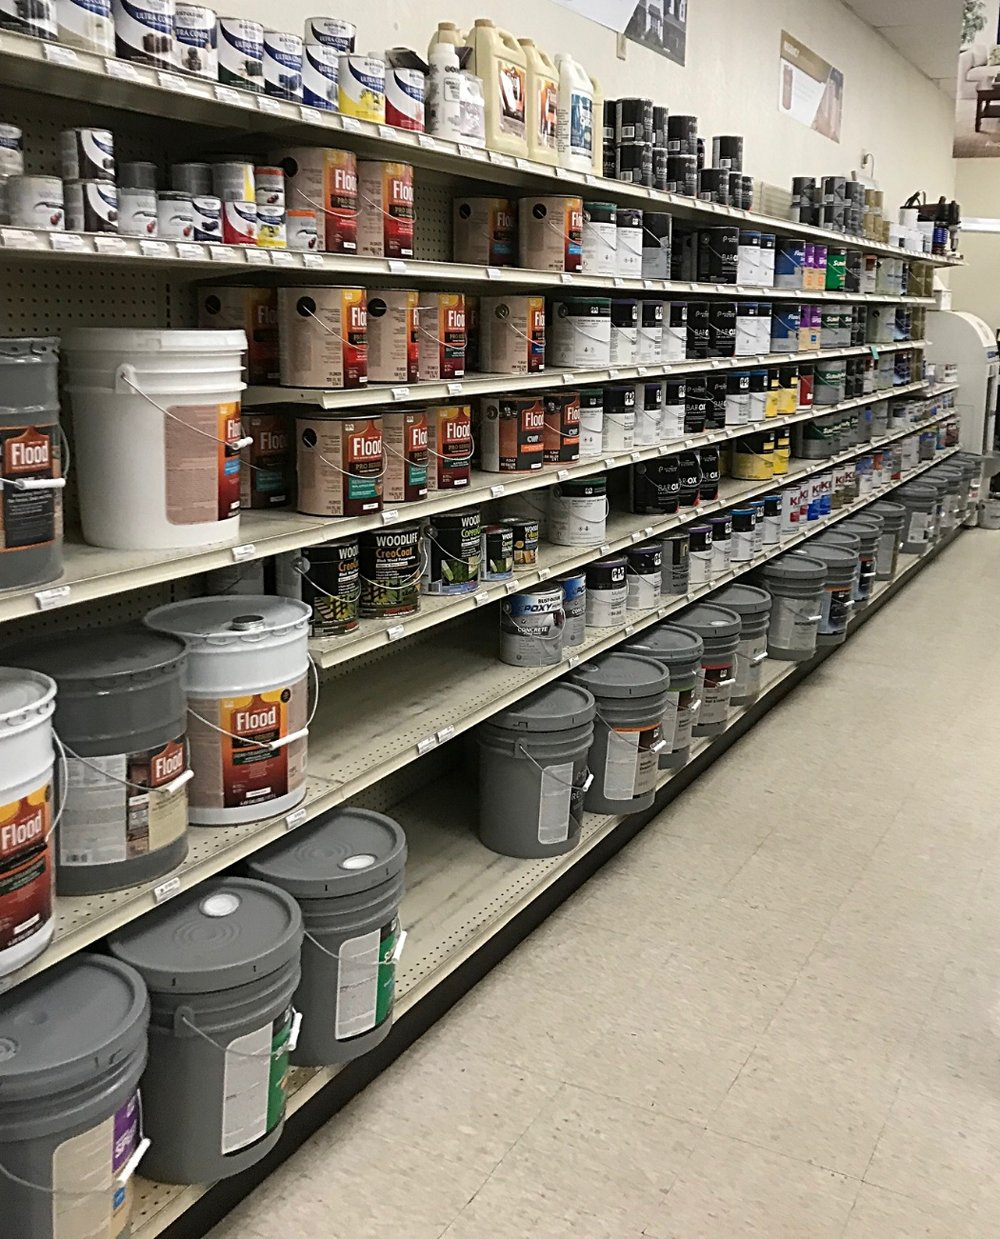 5 Gallon Buckets of Paint